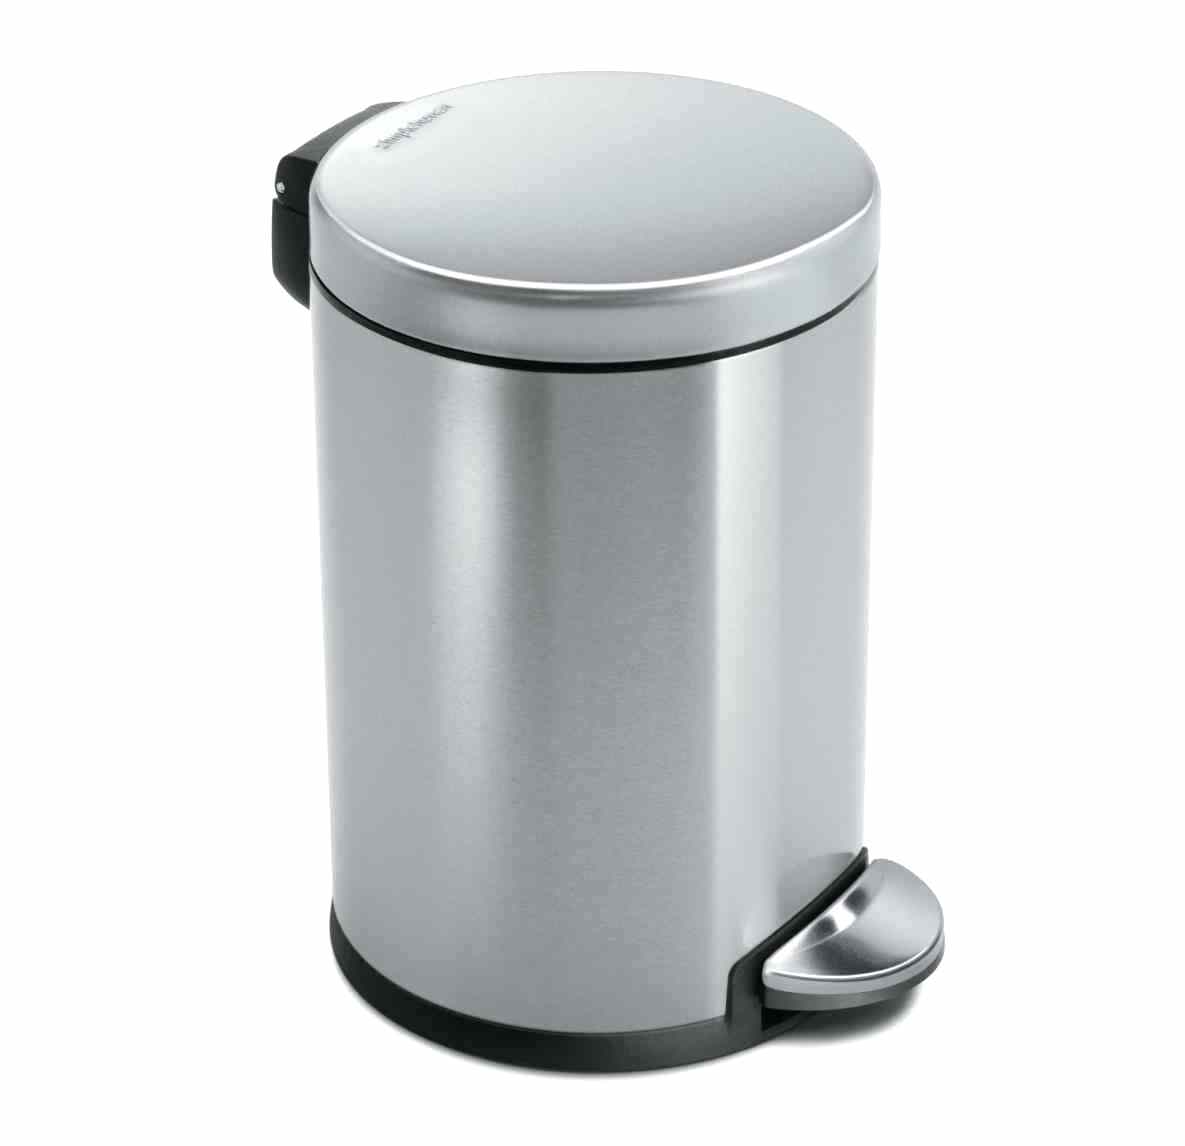 Small White Trash Can With Lid Trash Can Picture Free Download Best Trash Can Picture On